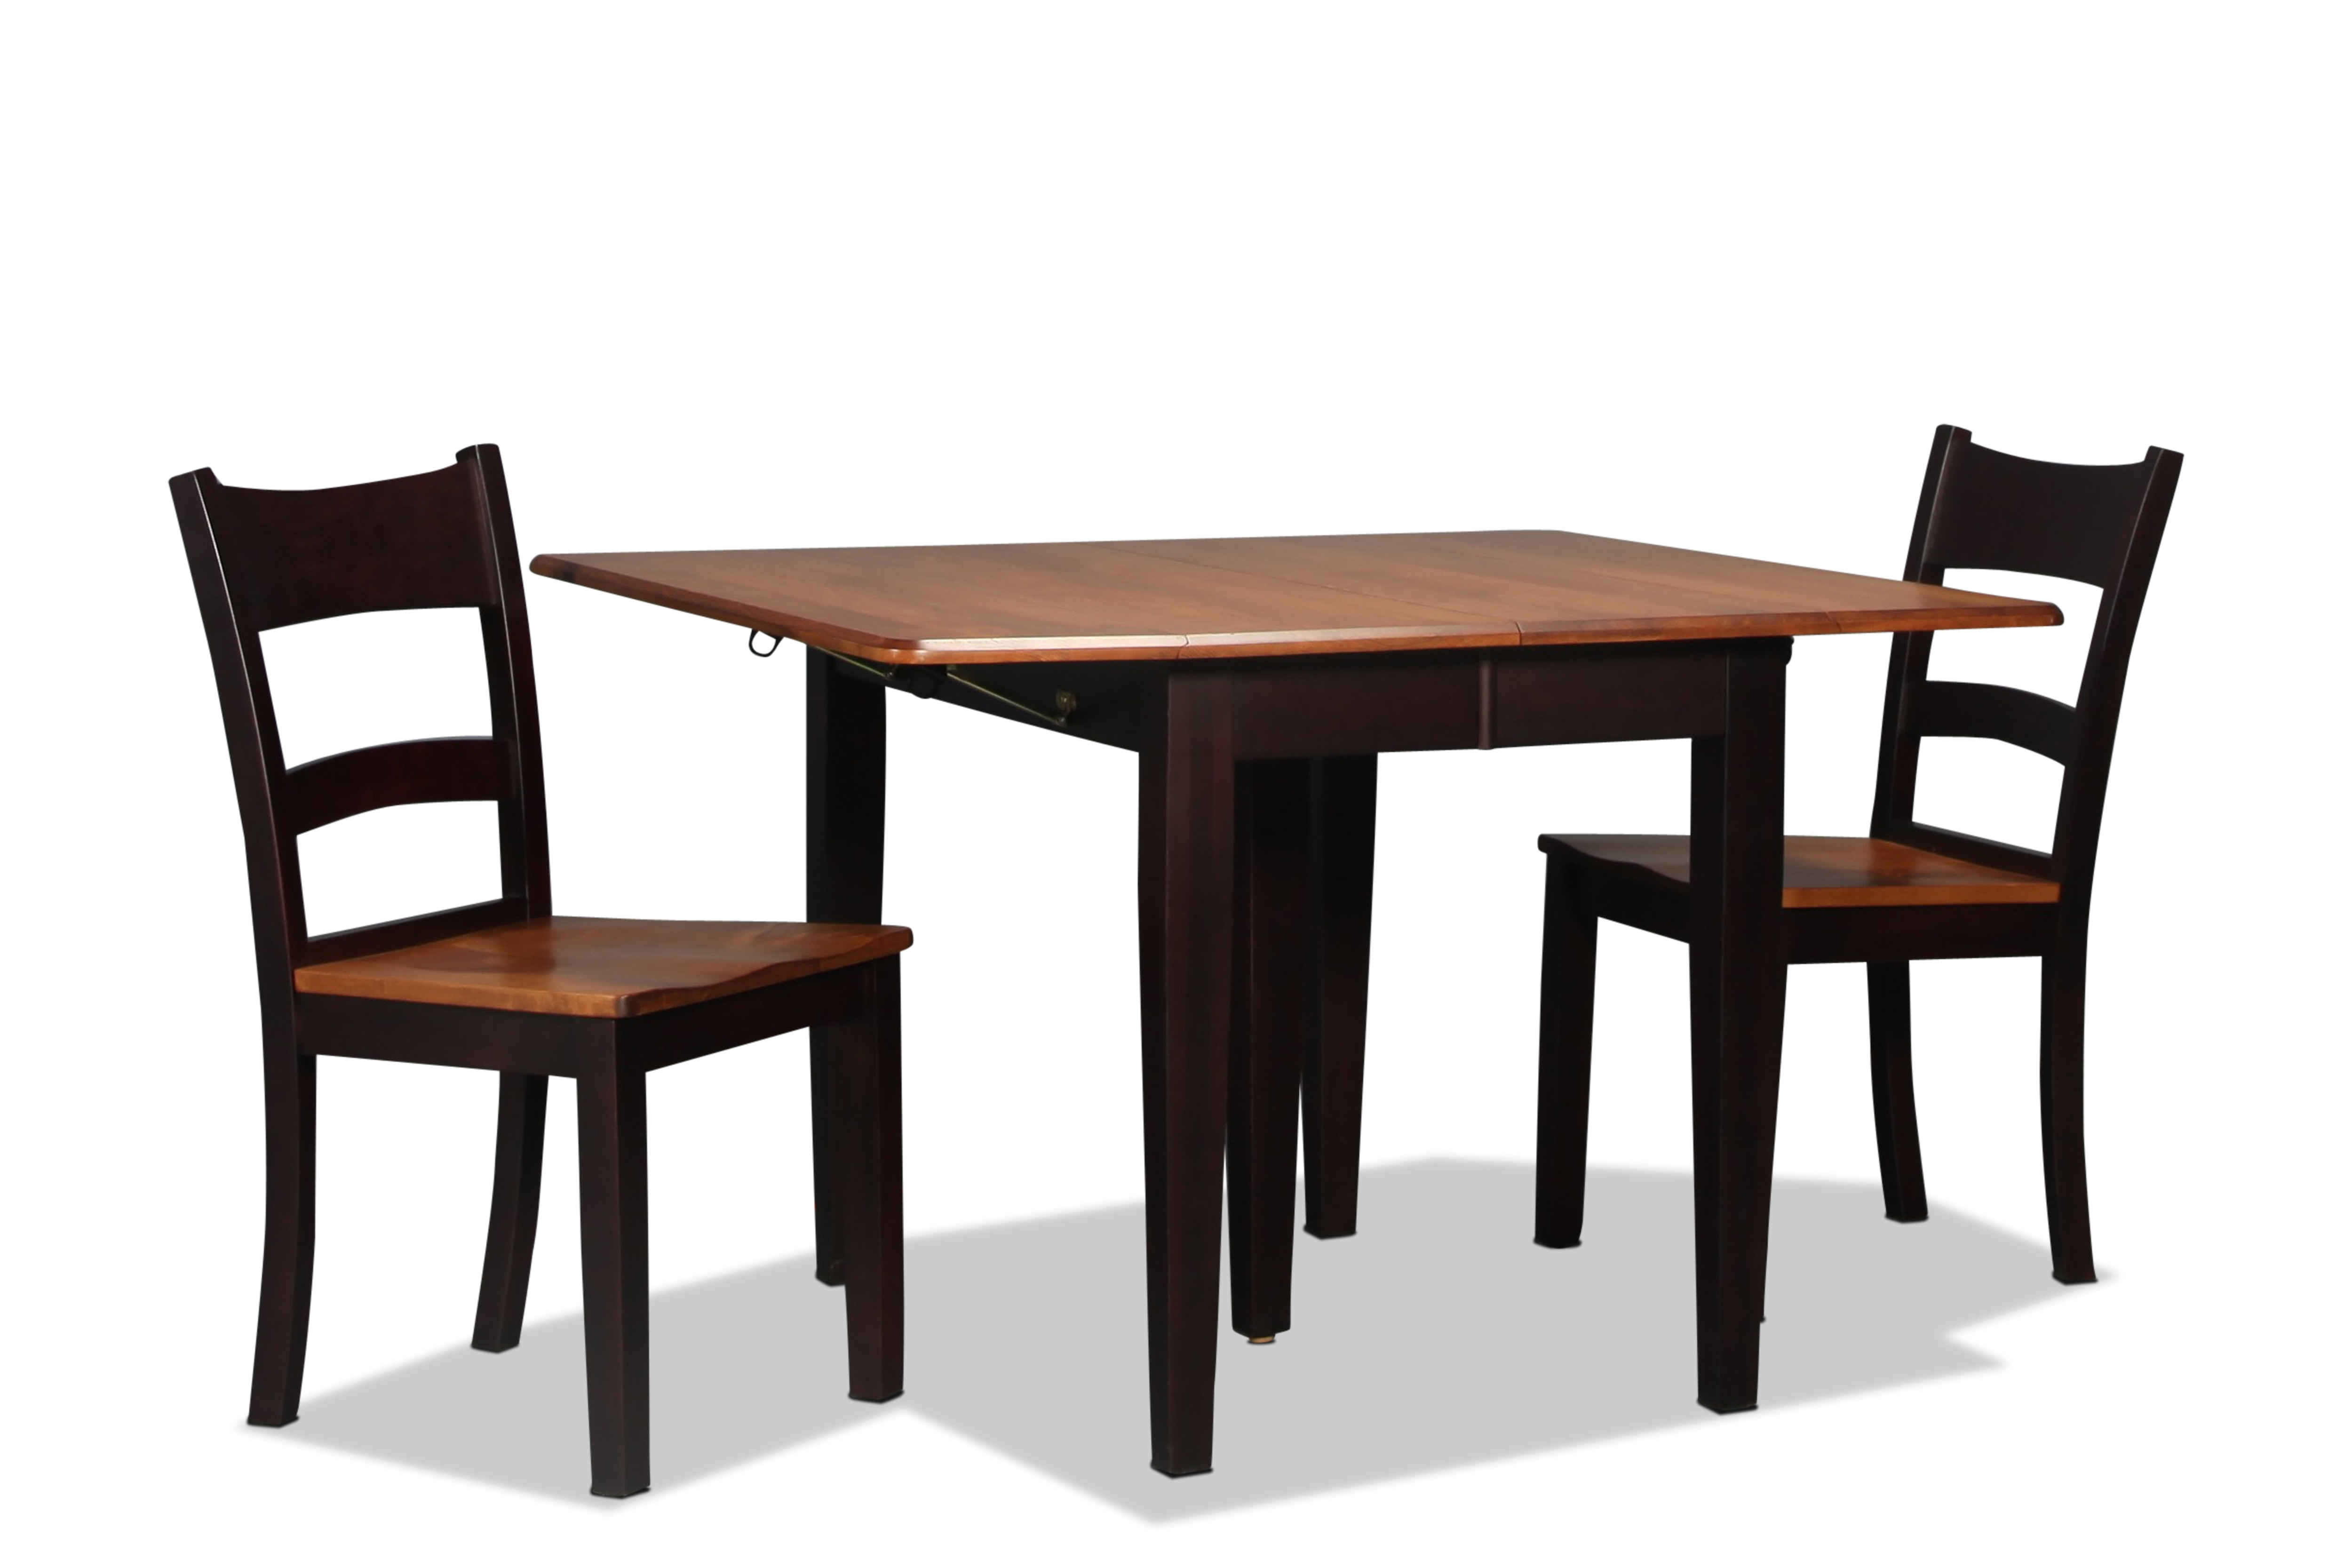 Saber Table and 2 Side Chairs